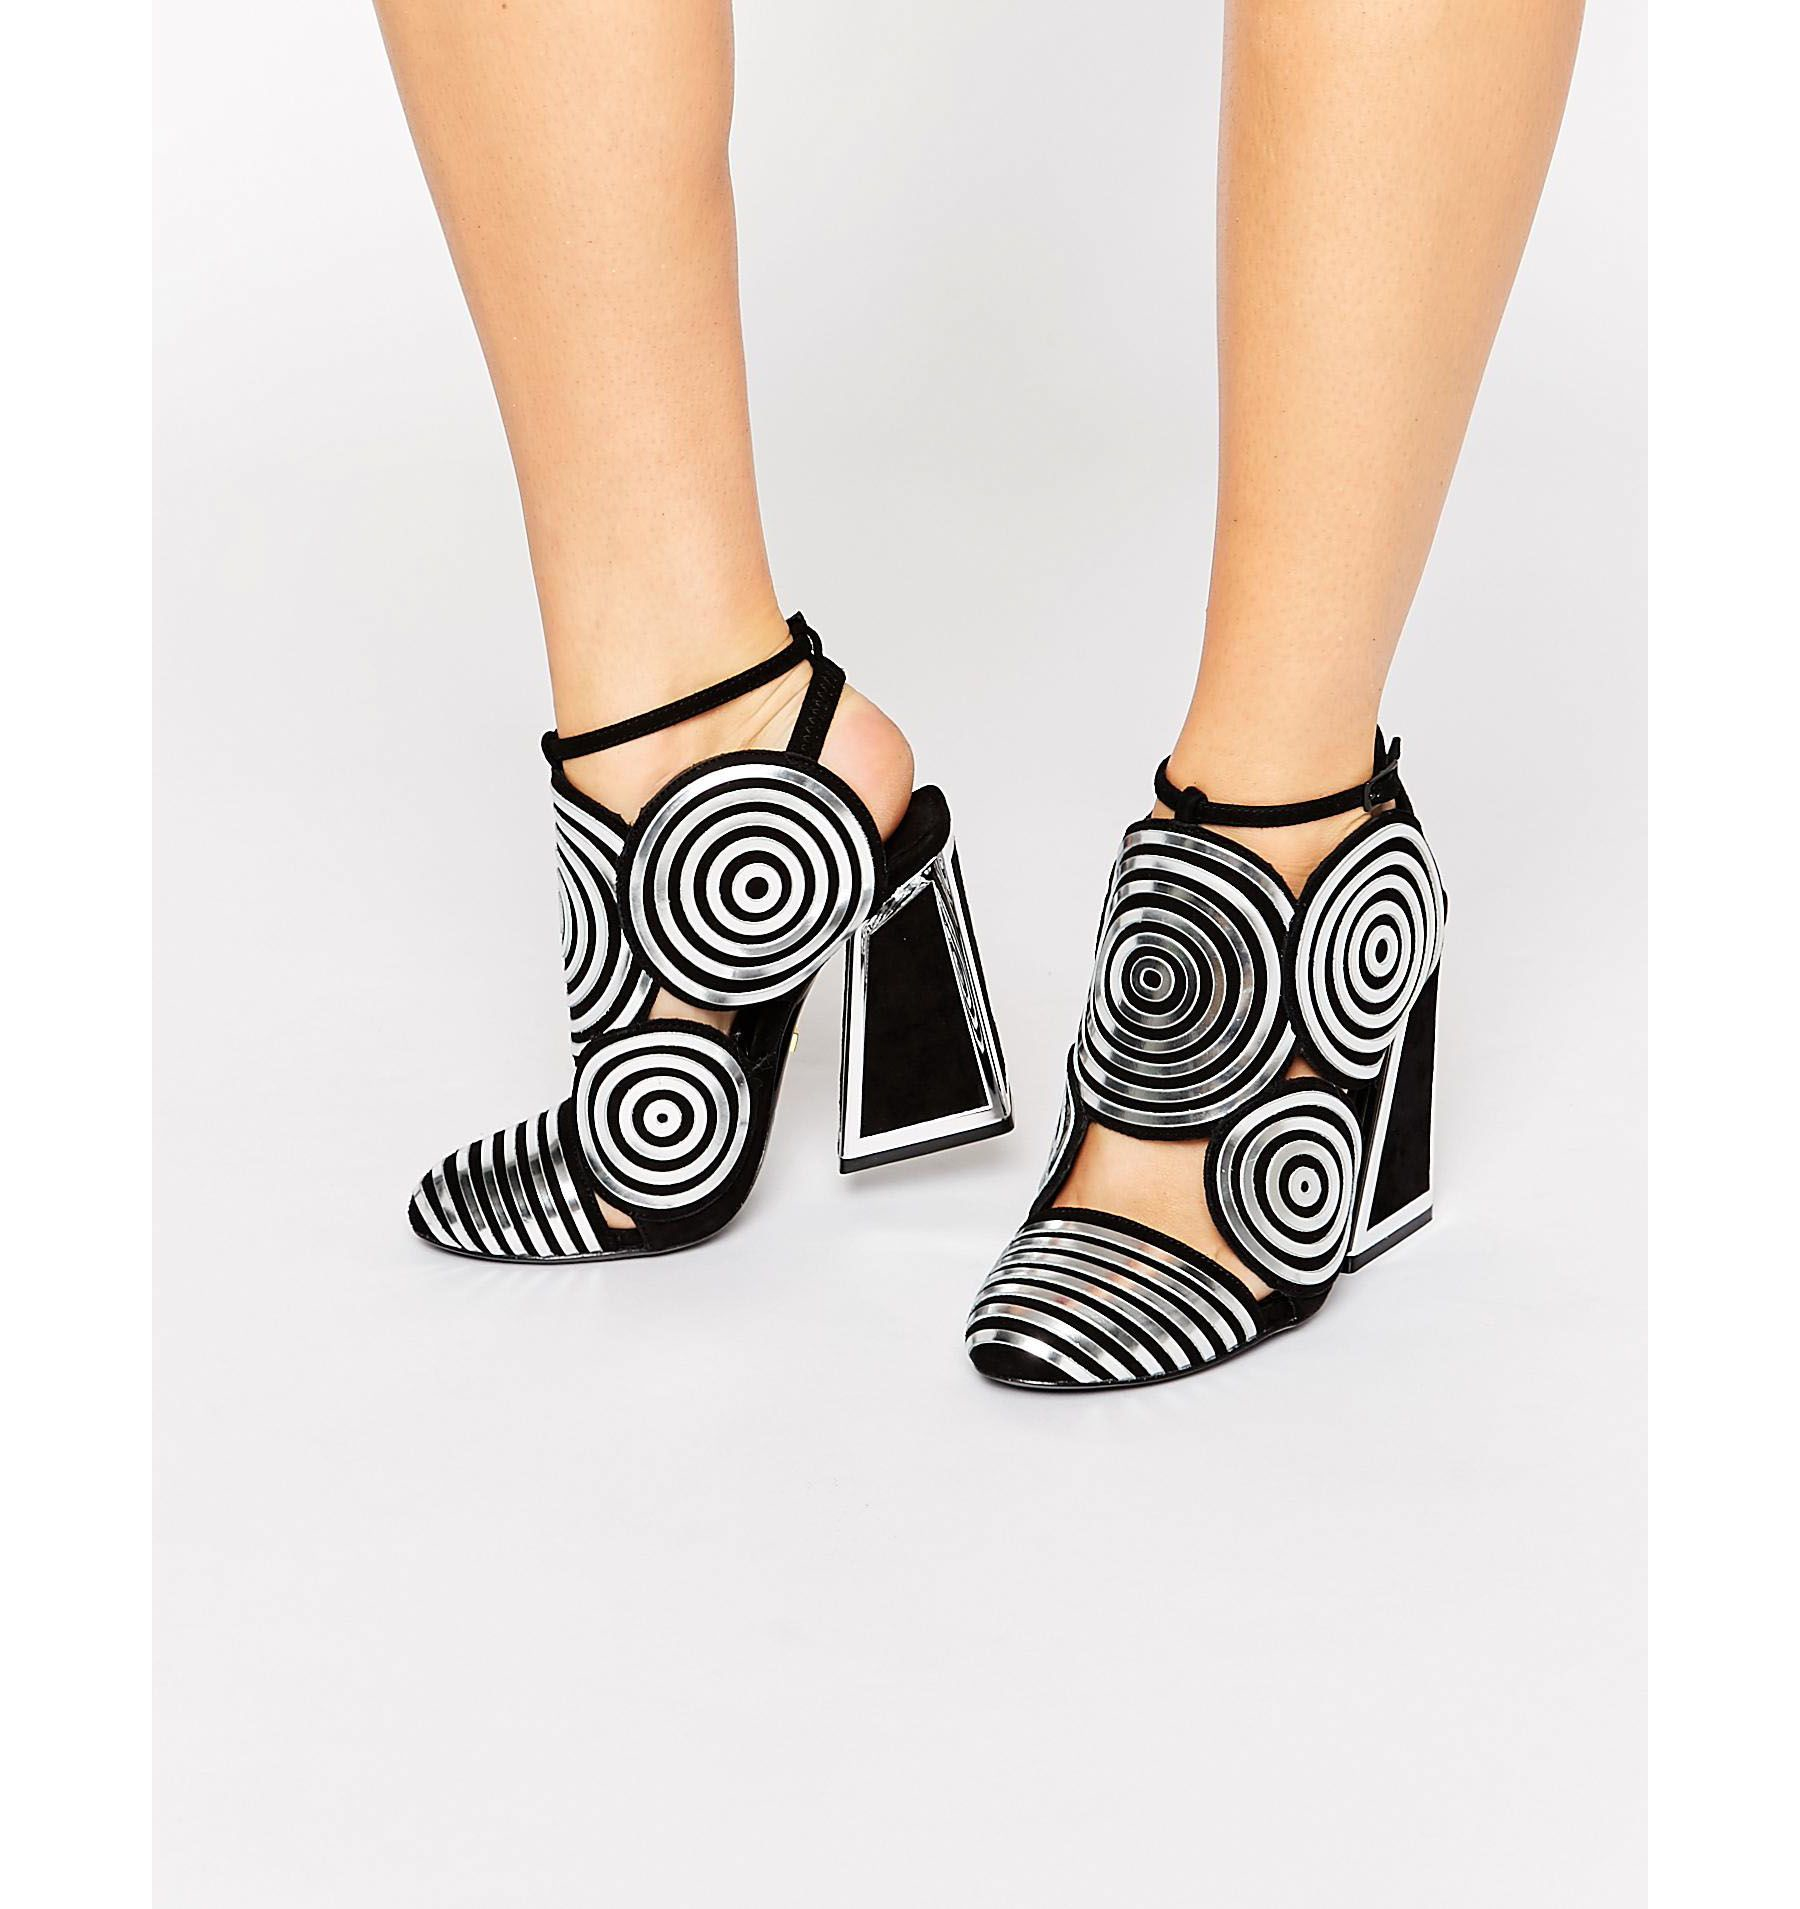 Silver Leather High Heel Shoes Kat Maconie